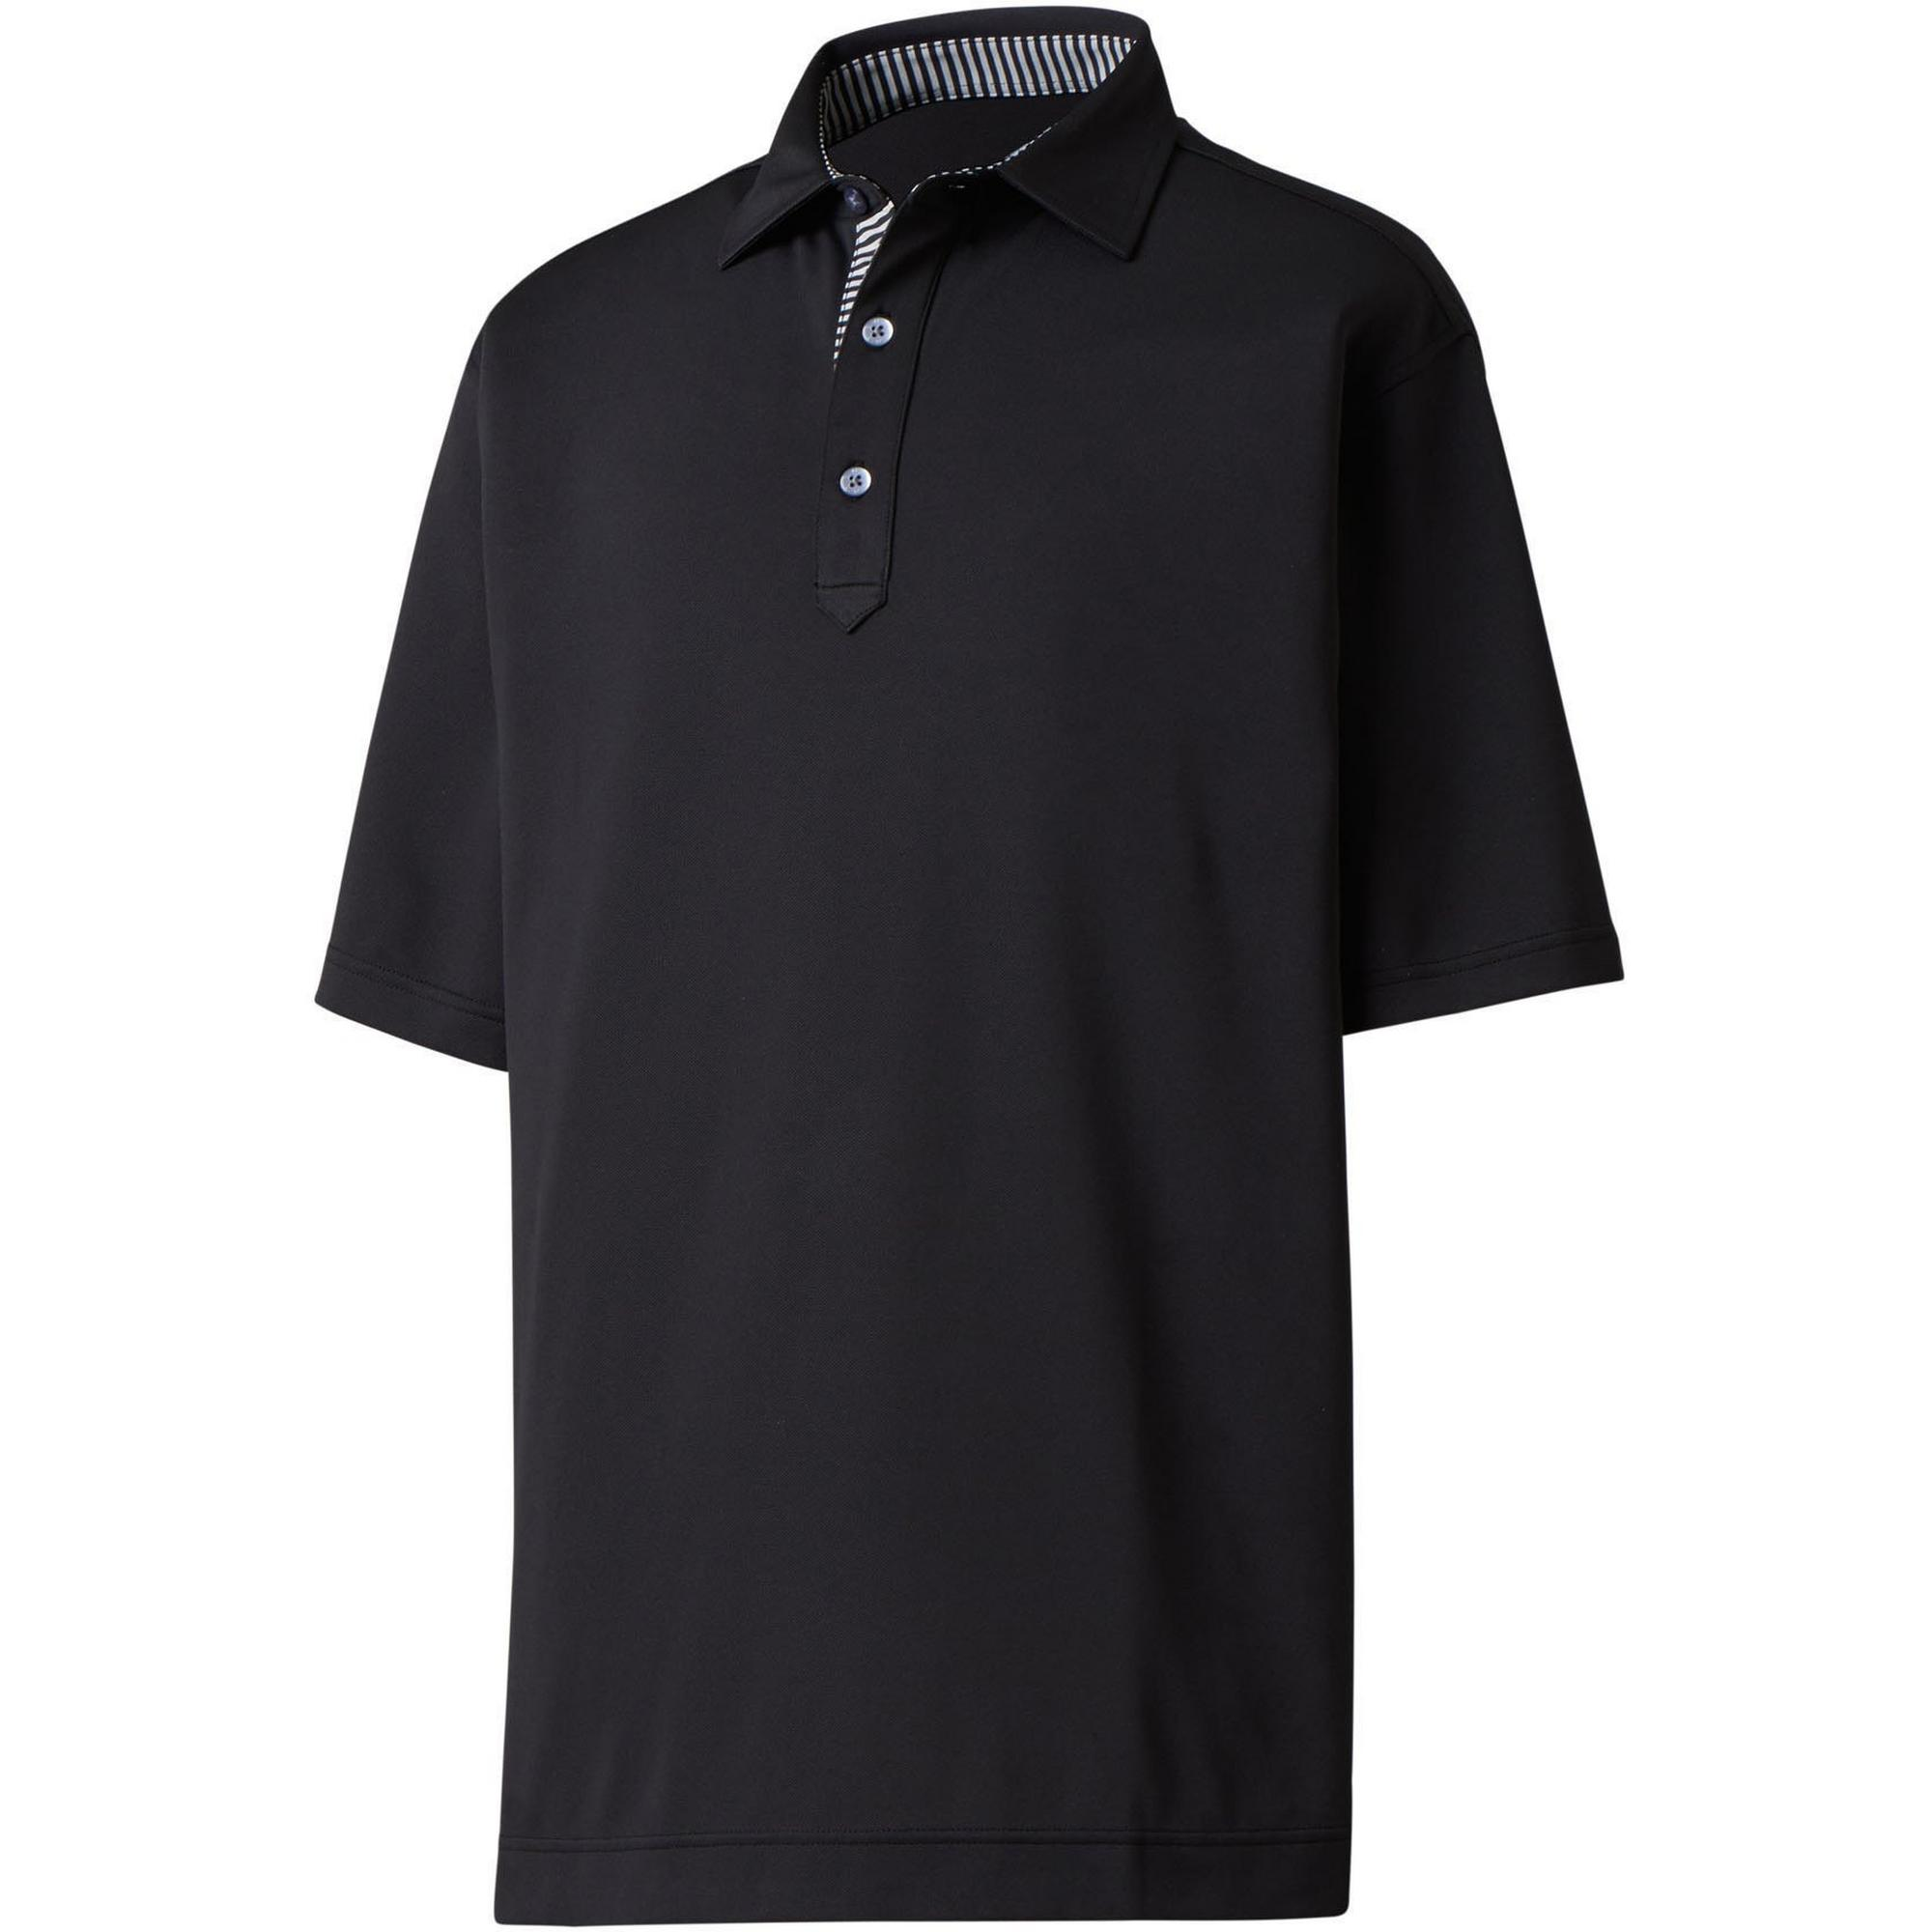 Men's ProDry Performance Stretch Pique Short Sleeve Polo